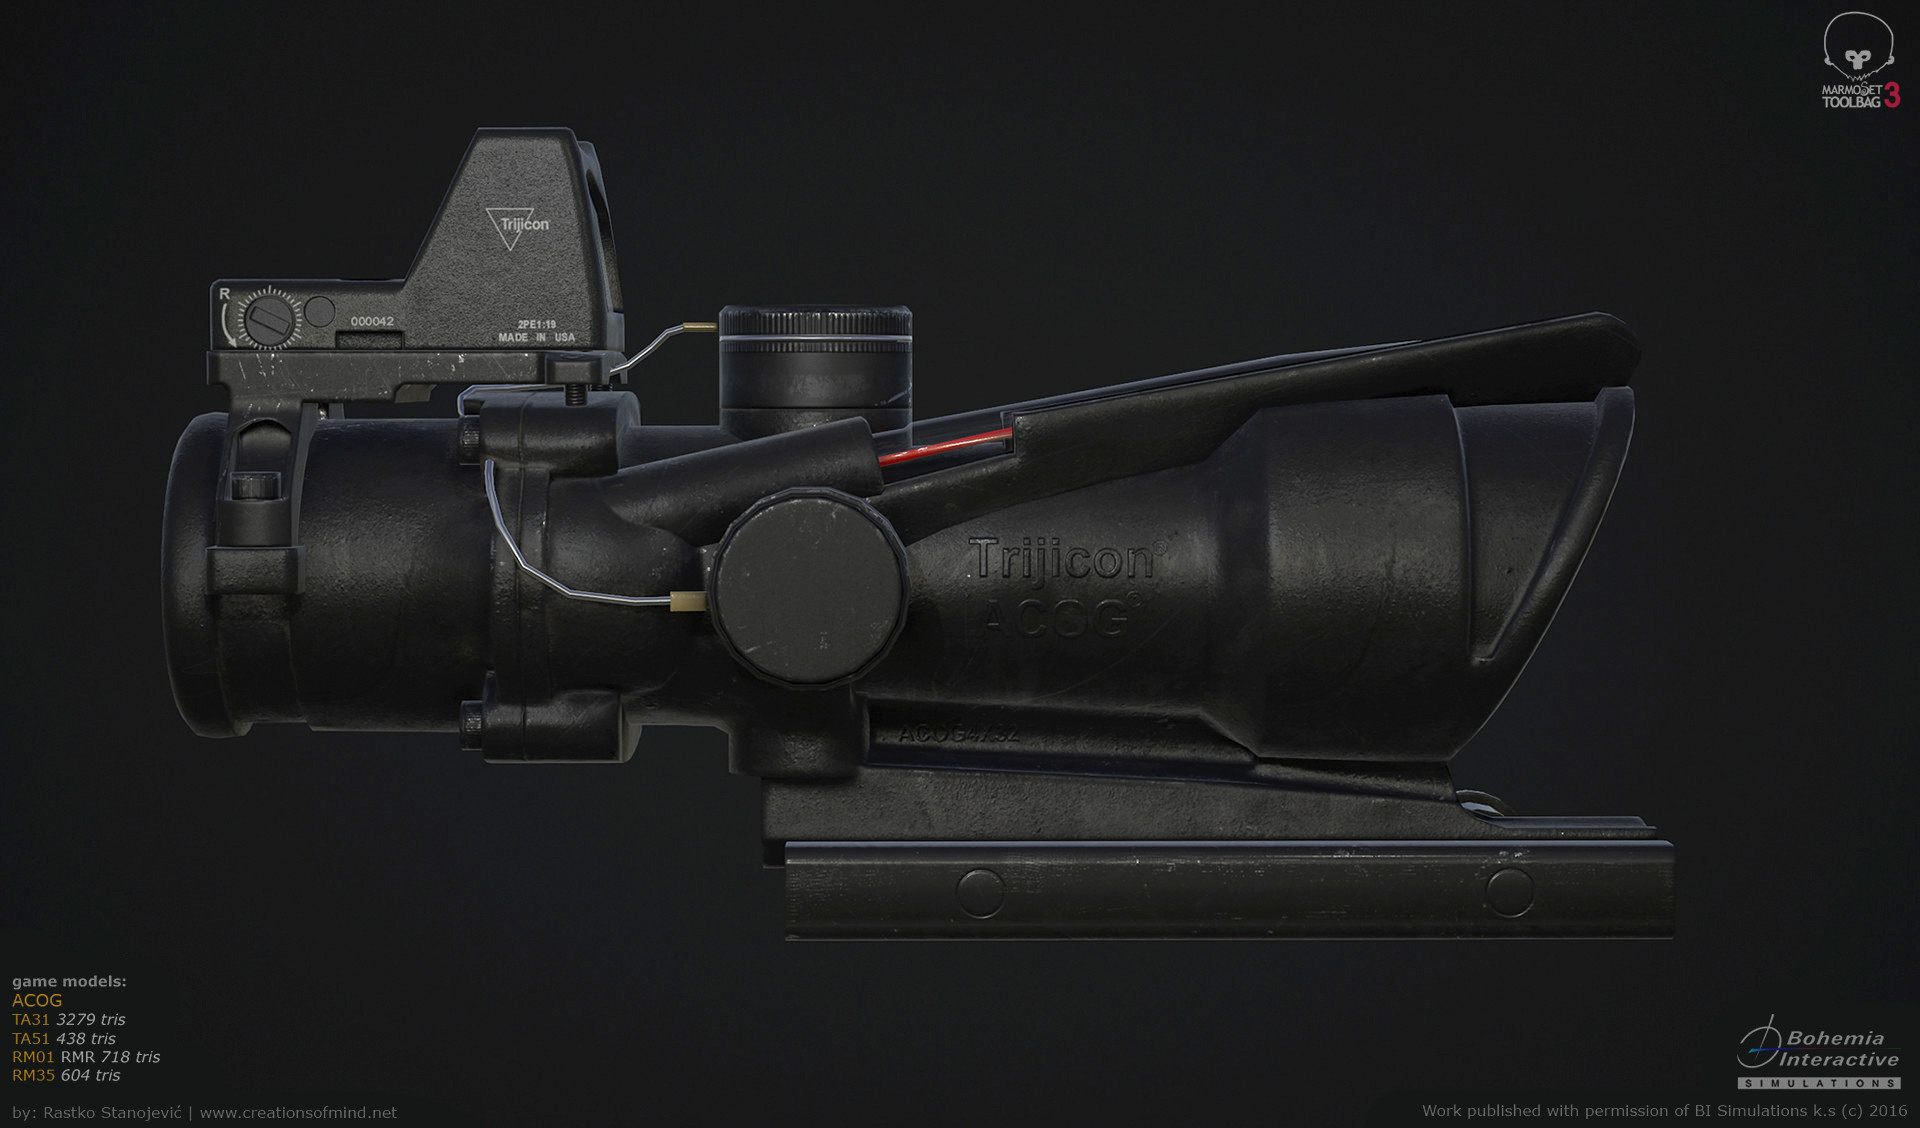 ArtStation - Trijicon Acog (game models), Rastko Stanojevic